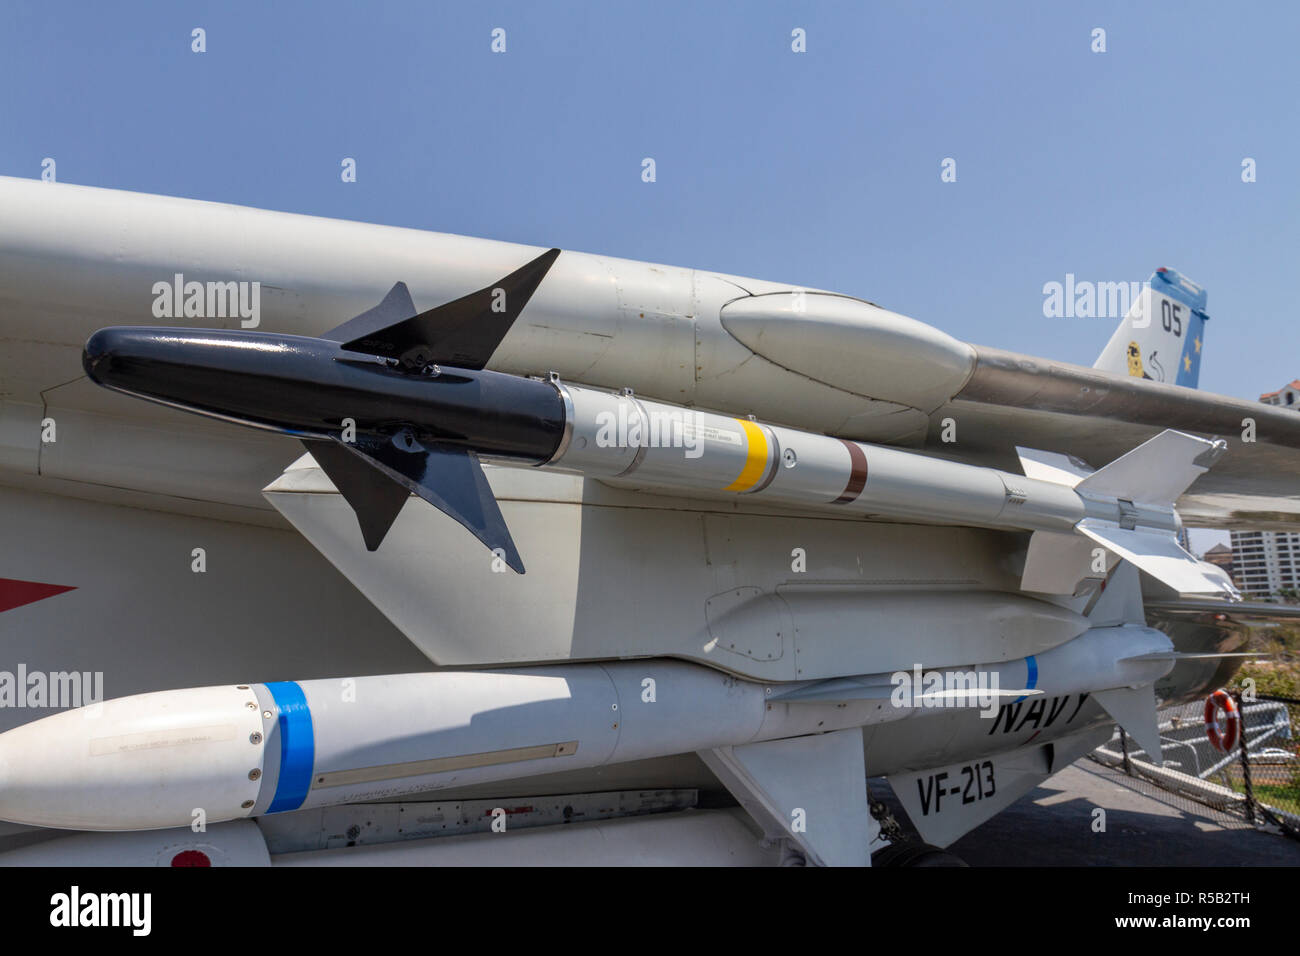 AIM-9 Sidewinder missile, F-14 Tomcat fighter aircraft, USS Midway Museum, San Diego, California, United States. Stock Photo